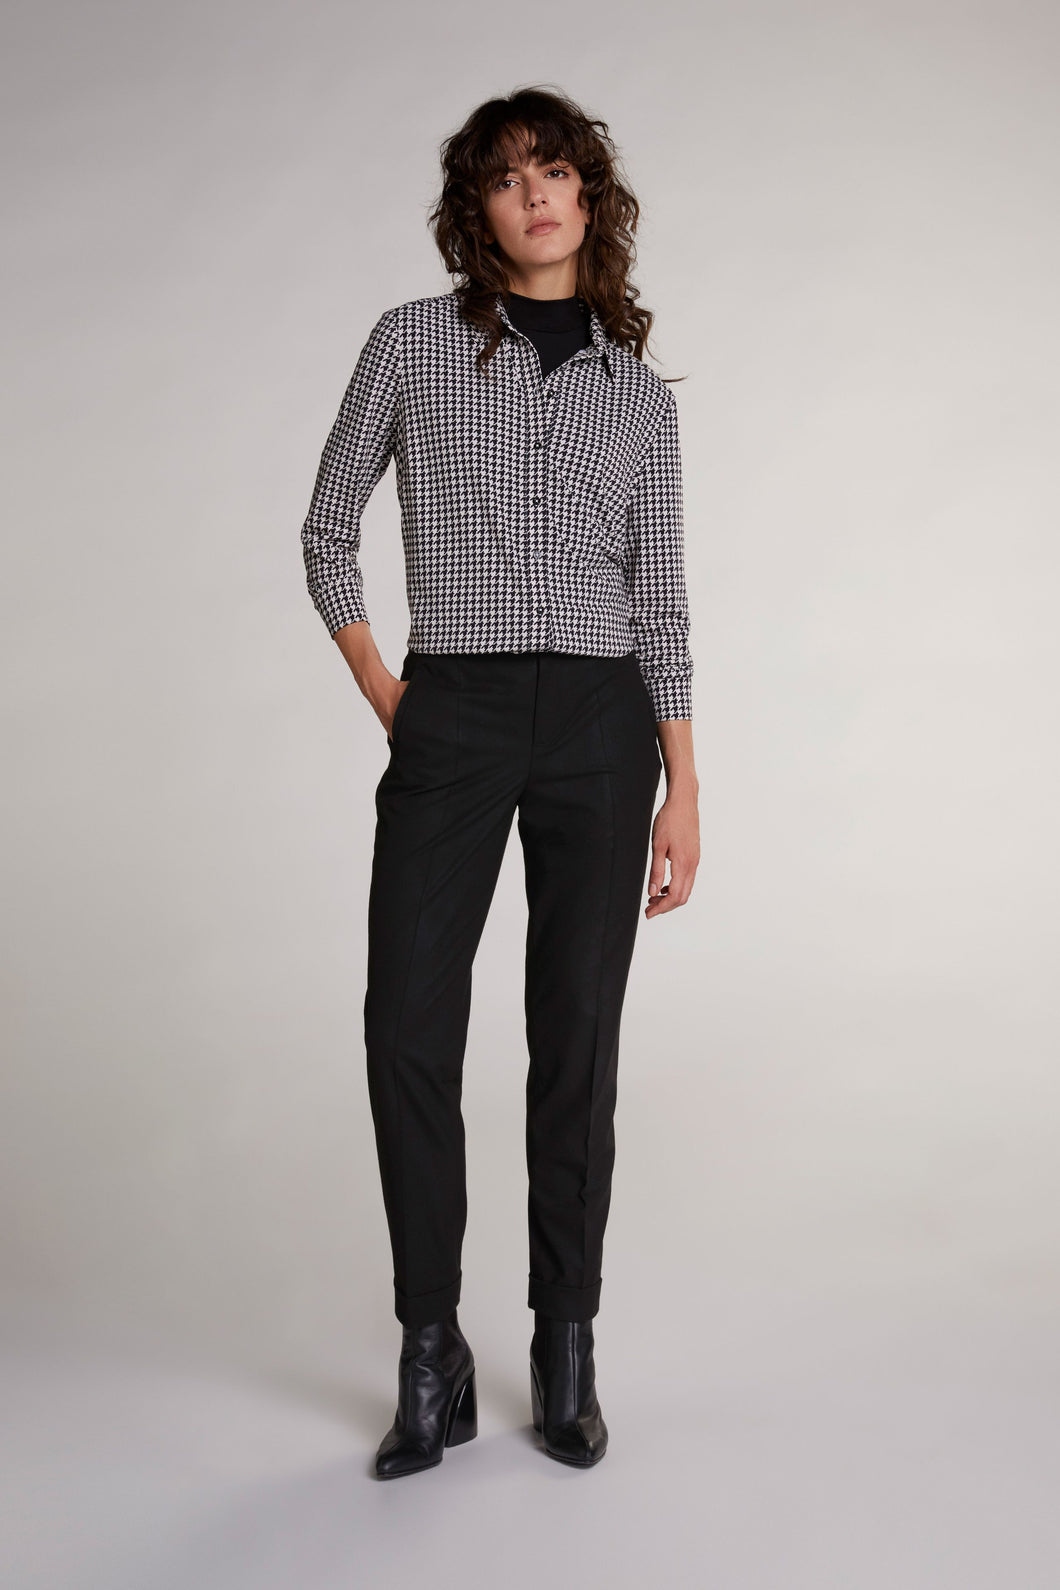 Oui Black & Cream Dogstooth Shirt